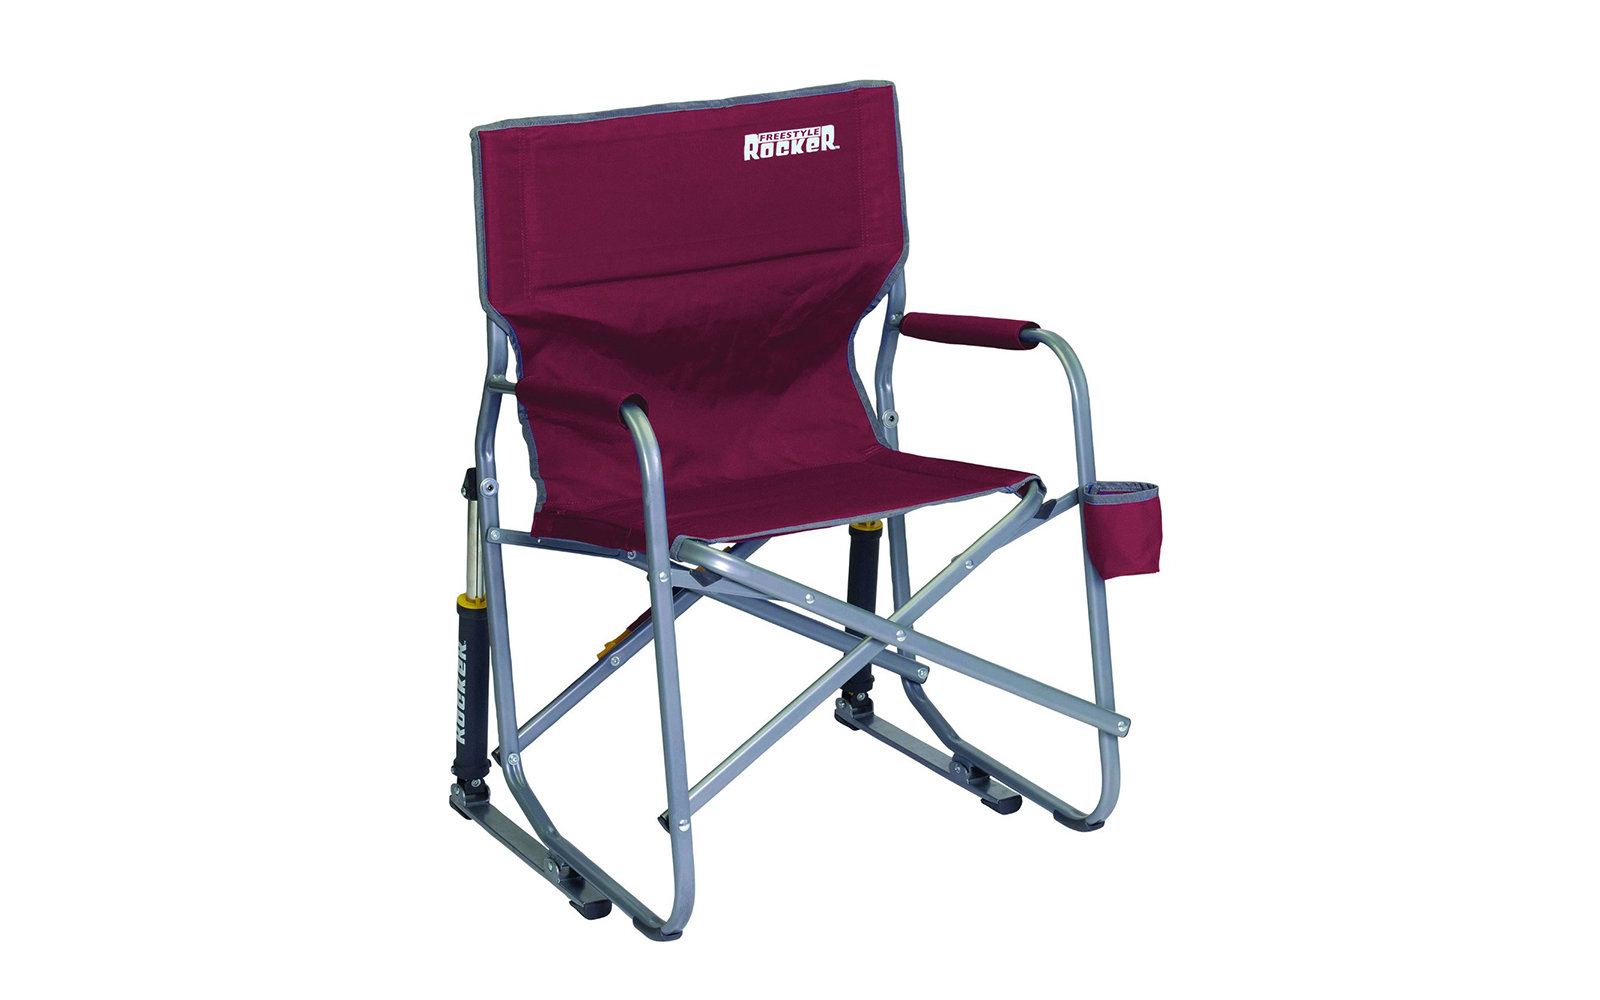 best camping chairs pier 1 imports the folding travel 43 leisure